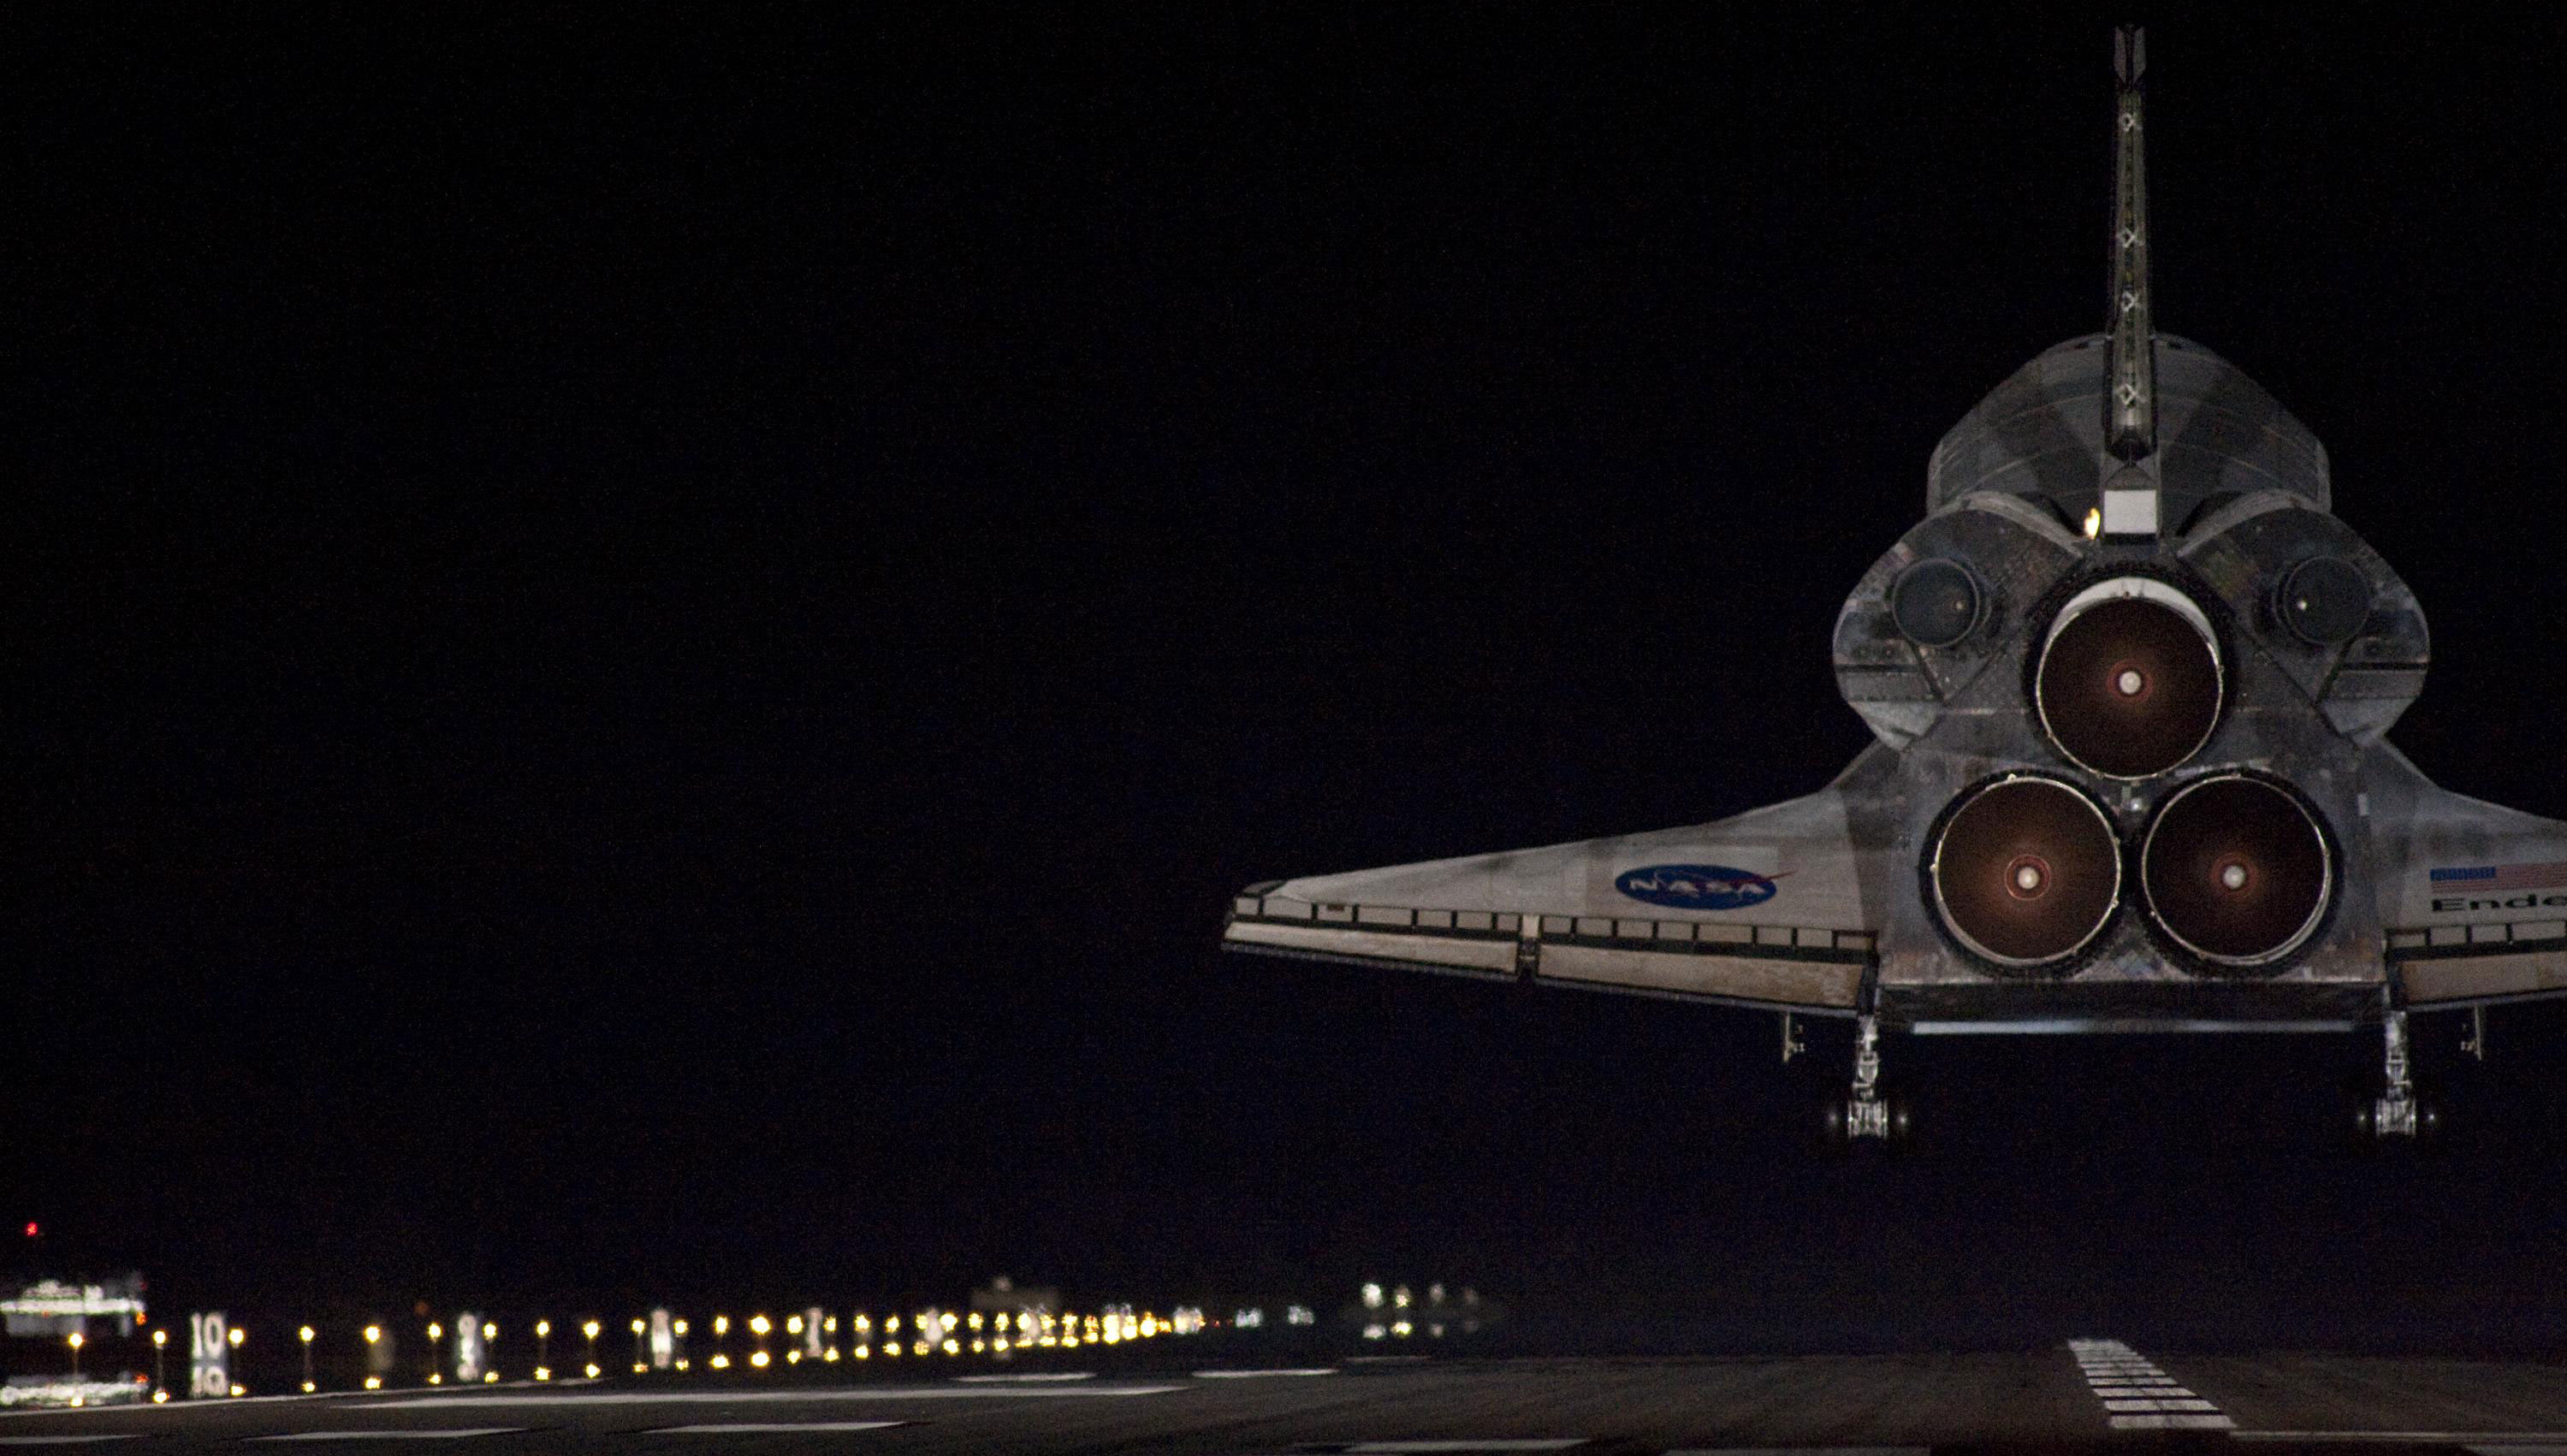 Endeavour touches down in darkness at NASA's Kennedy Space Center in Florida after 14 days in space.